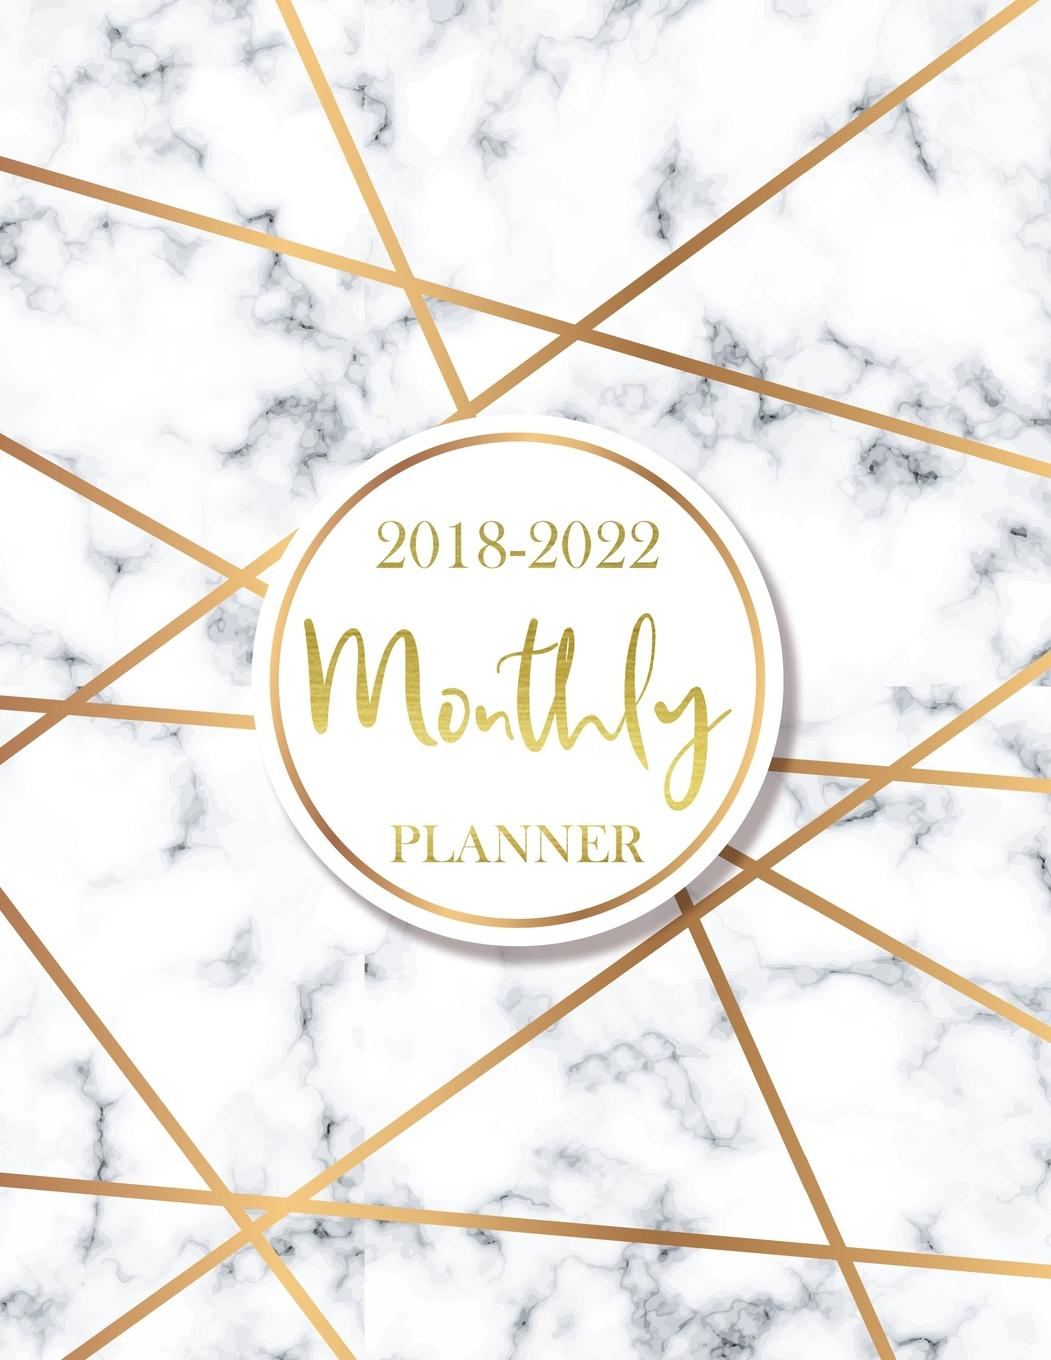 photo relating to Monthly Organizer identify 2018 - 2022 Regular monthly Planner: 60 Weeks Calendar, Regular Program Organizer Routine Planner for the Subsequent 5 A long time, Appointment Laptop computer, Regular monthly